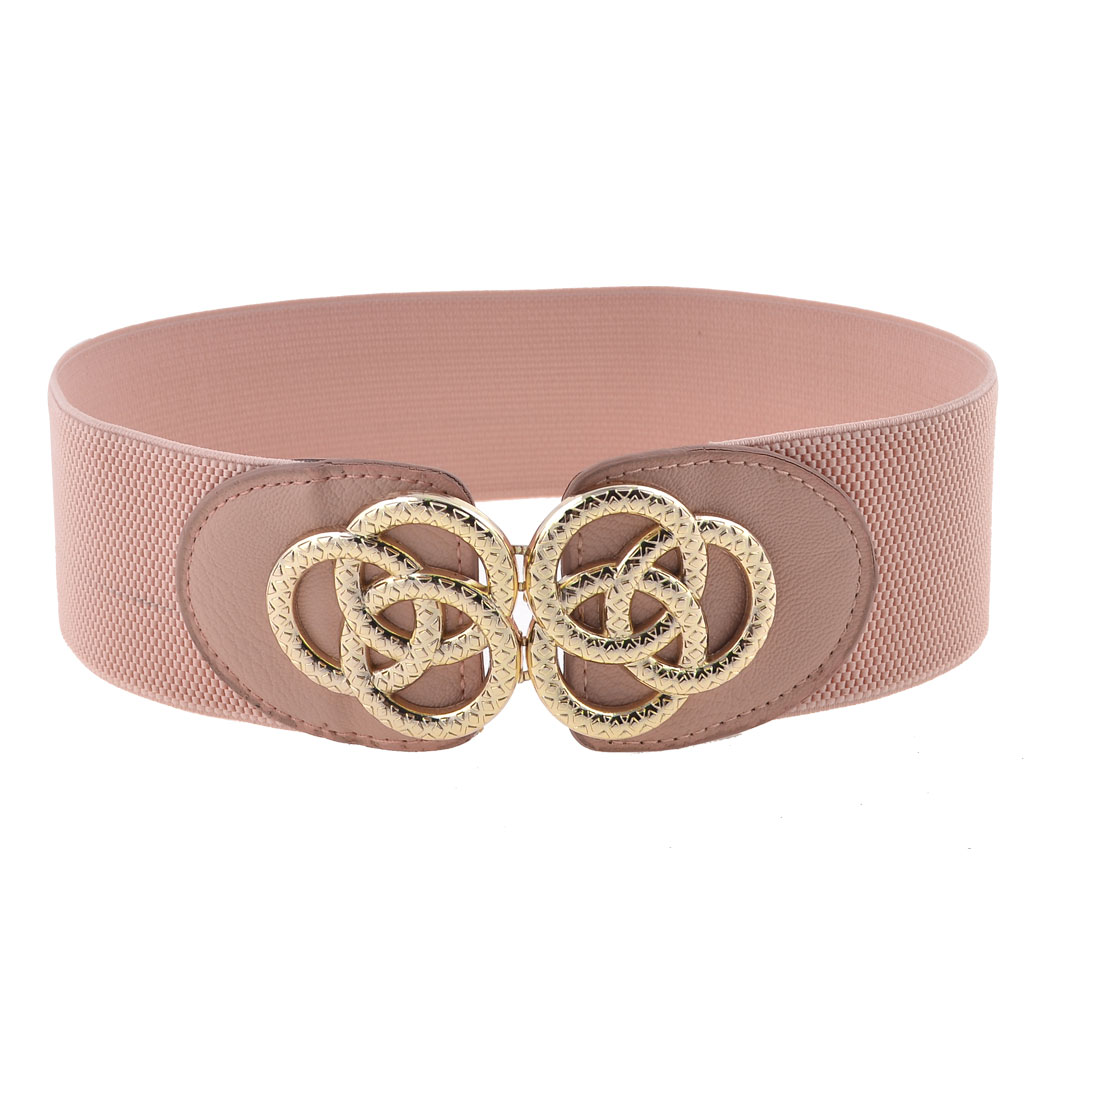 Women Rings Shape Metallic Interlocking Buckle Spandex Cinch Waist Belt Pink